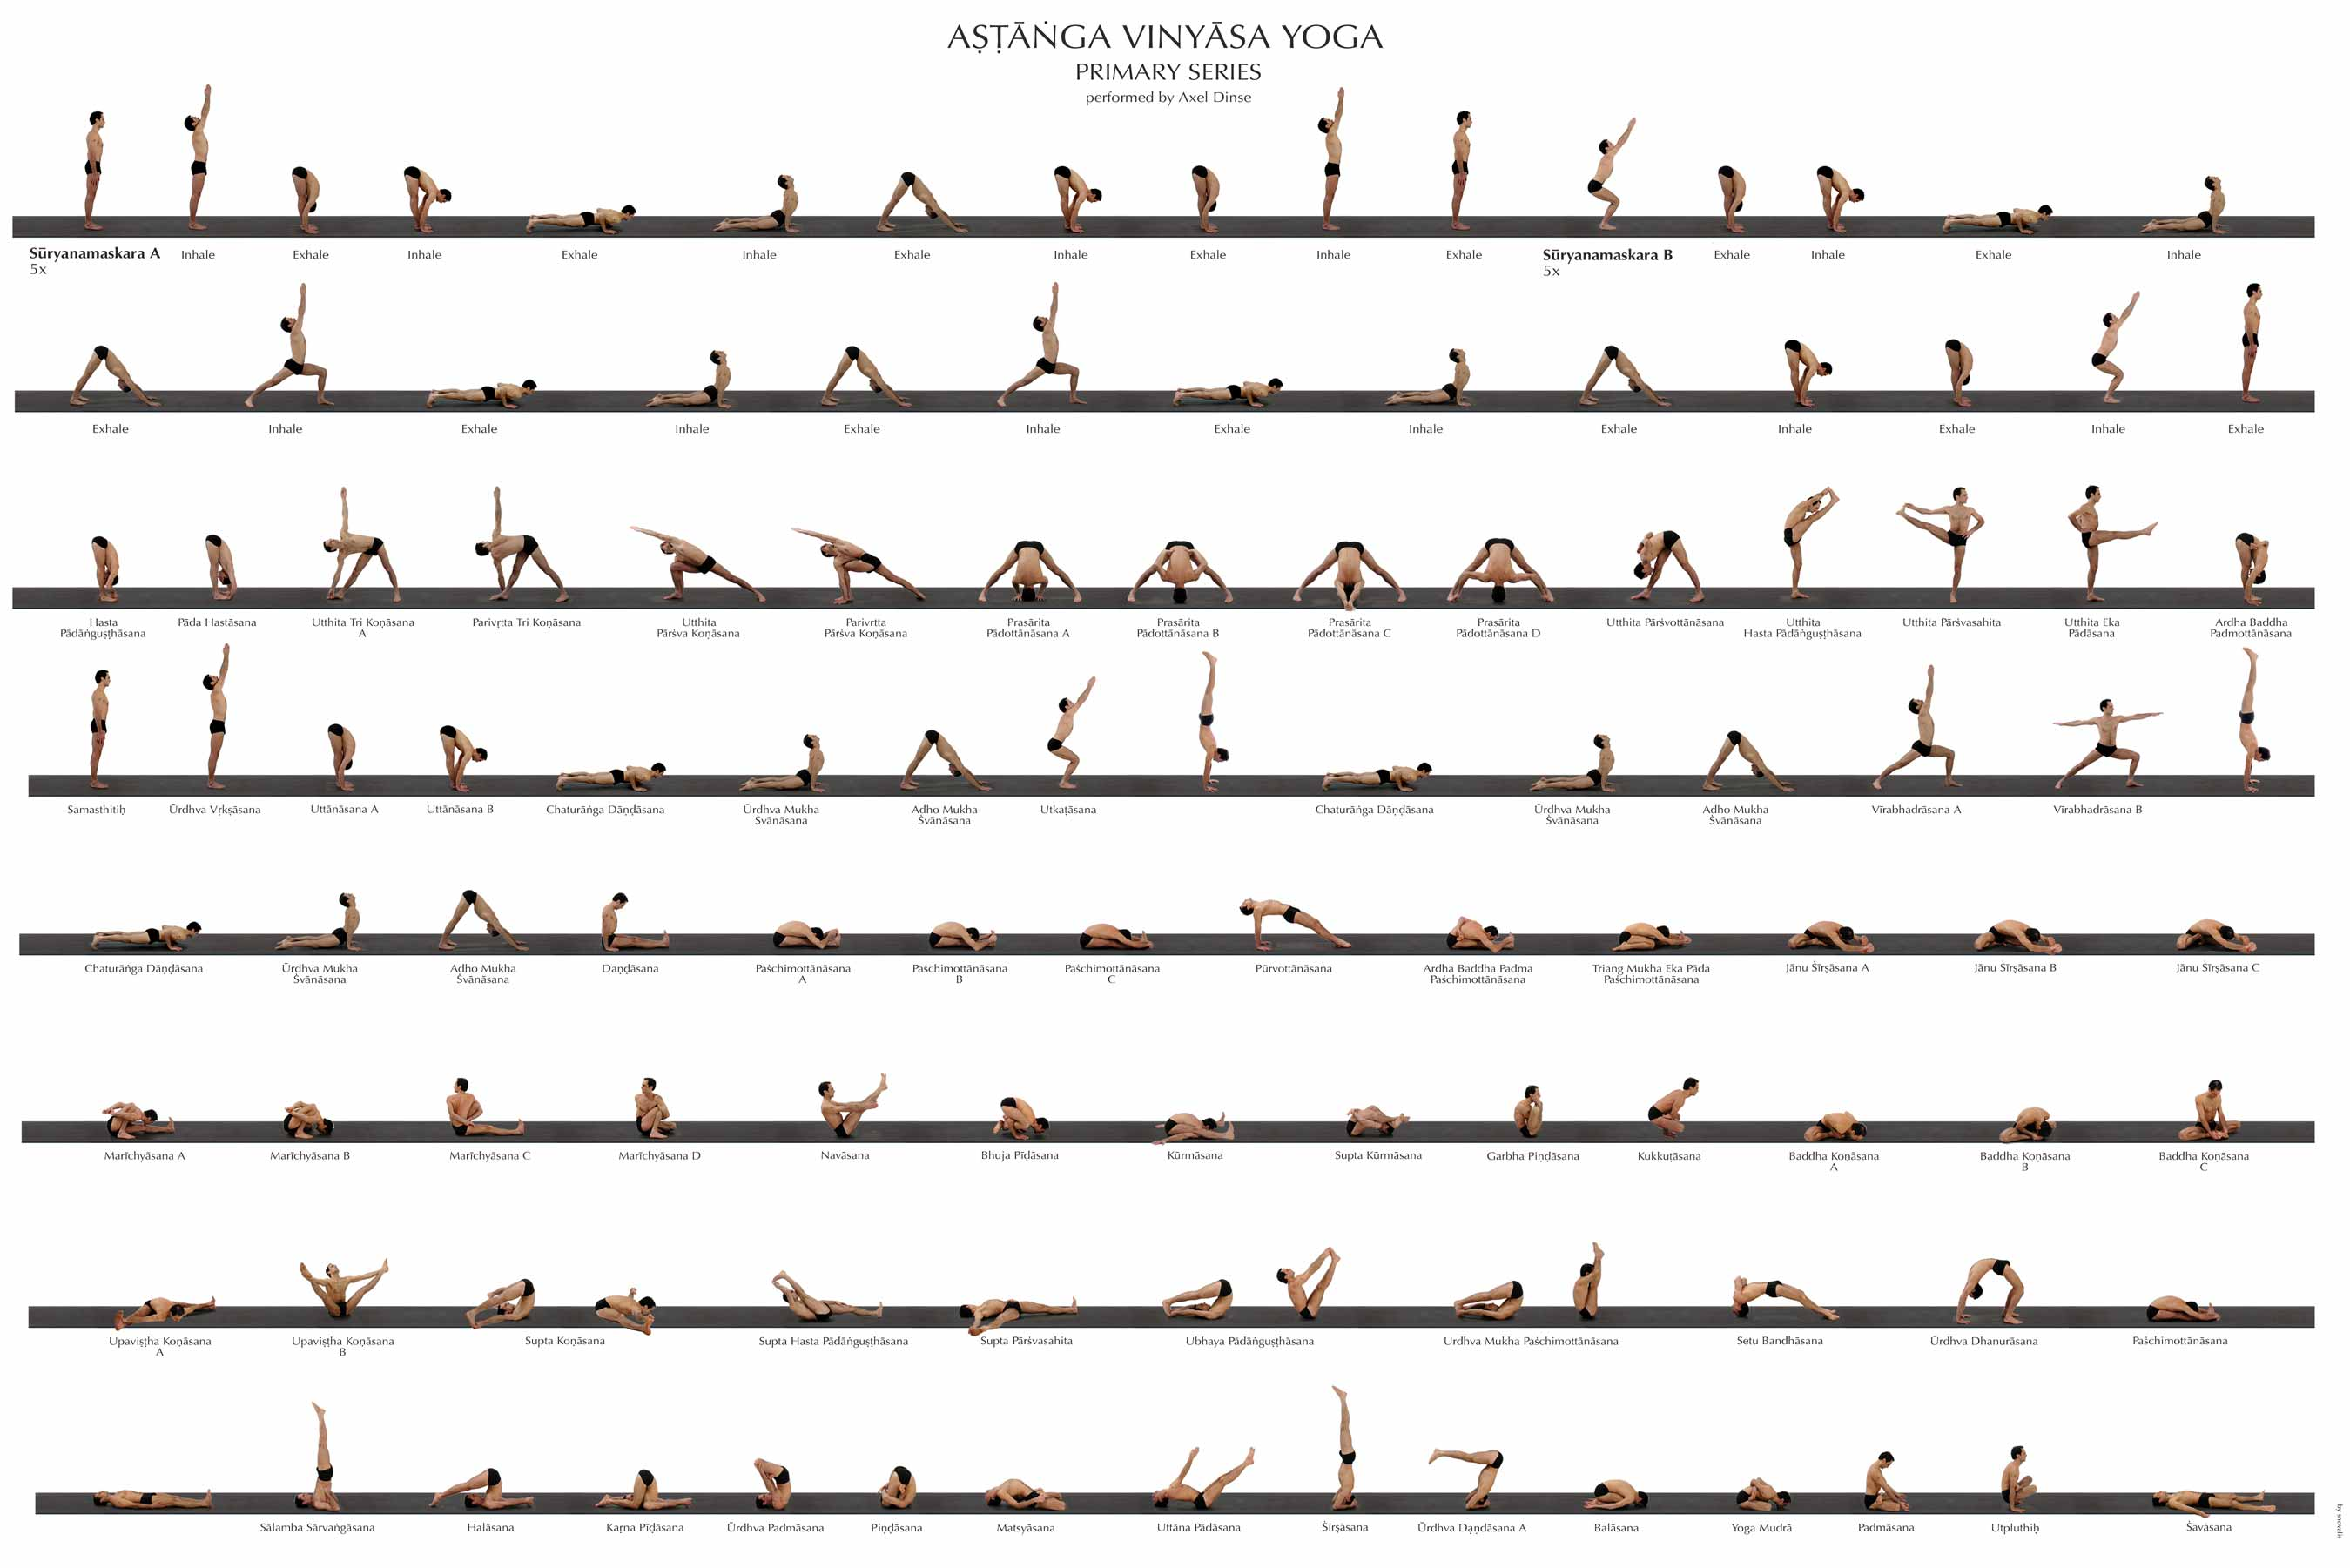 Brief About Ashtanga Vinyasa Yoga Primary Series With Photograph